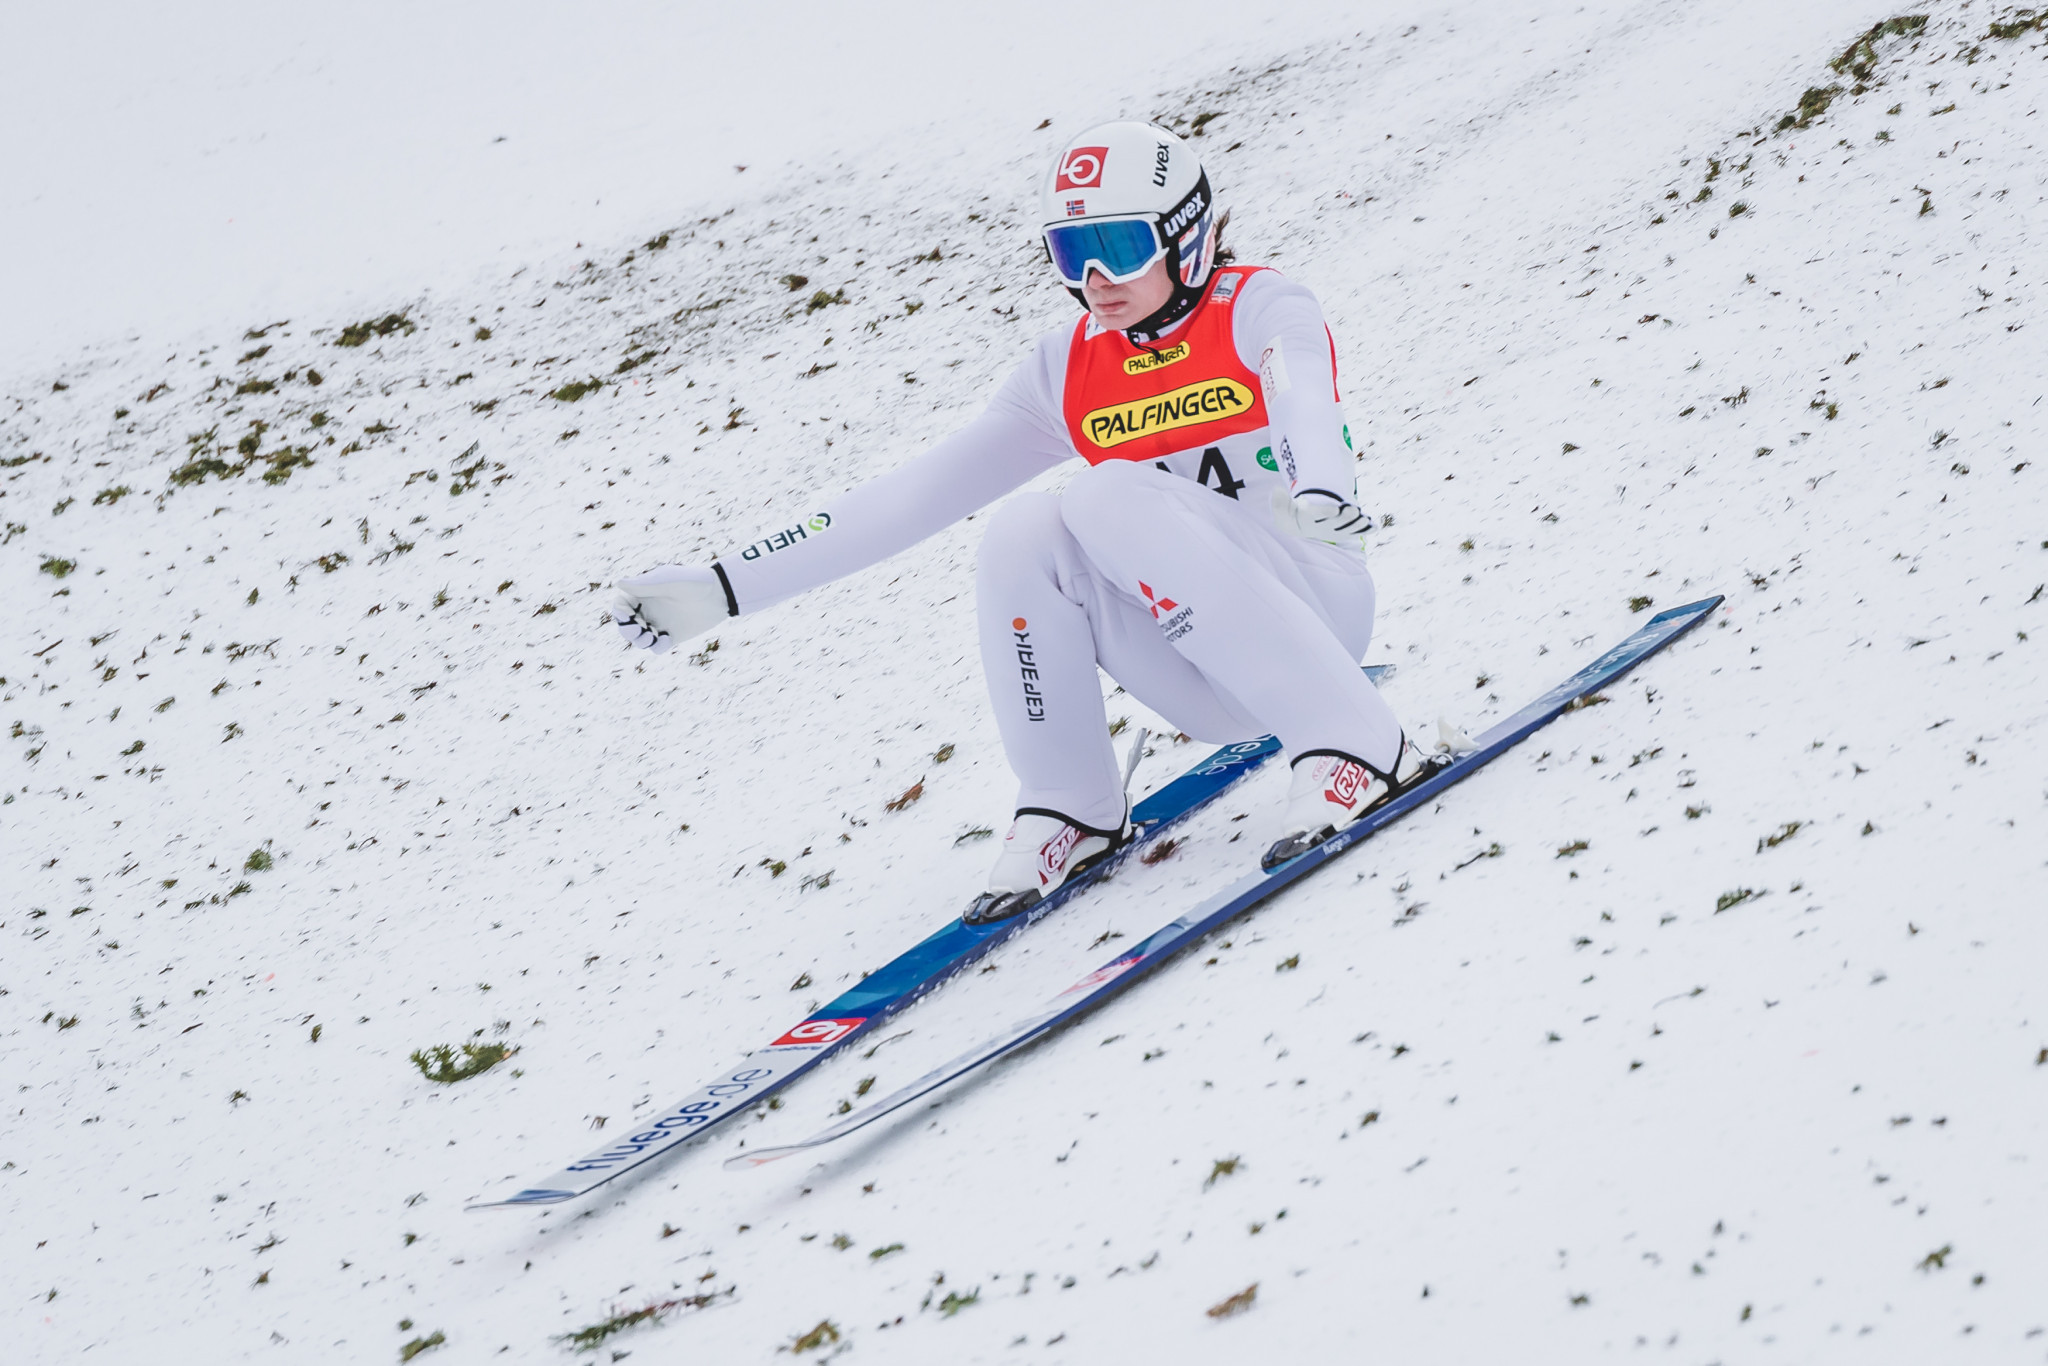 Lindvik tops qualification at Ski Jumping World Cup in Rasnov